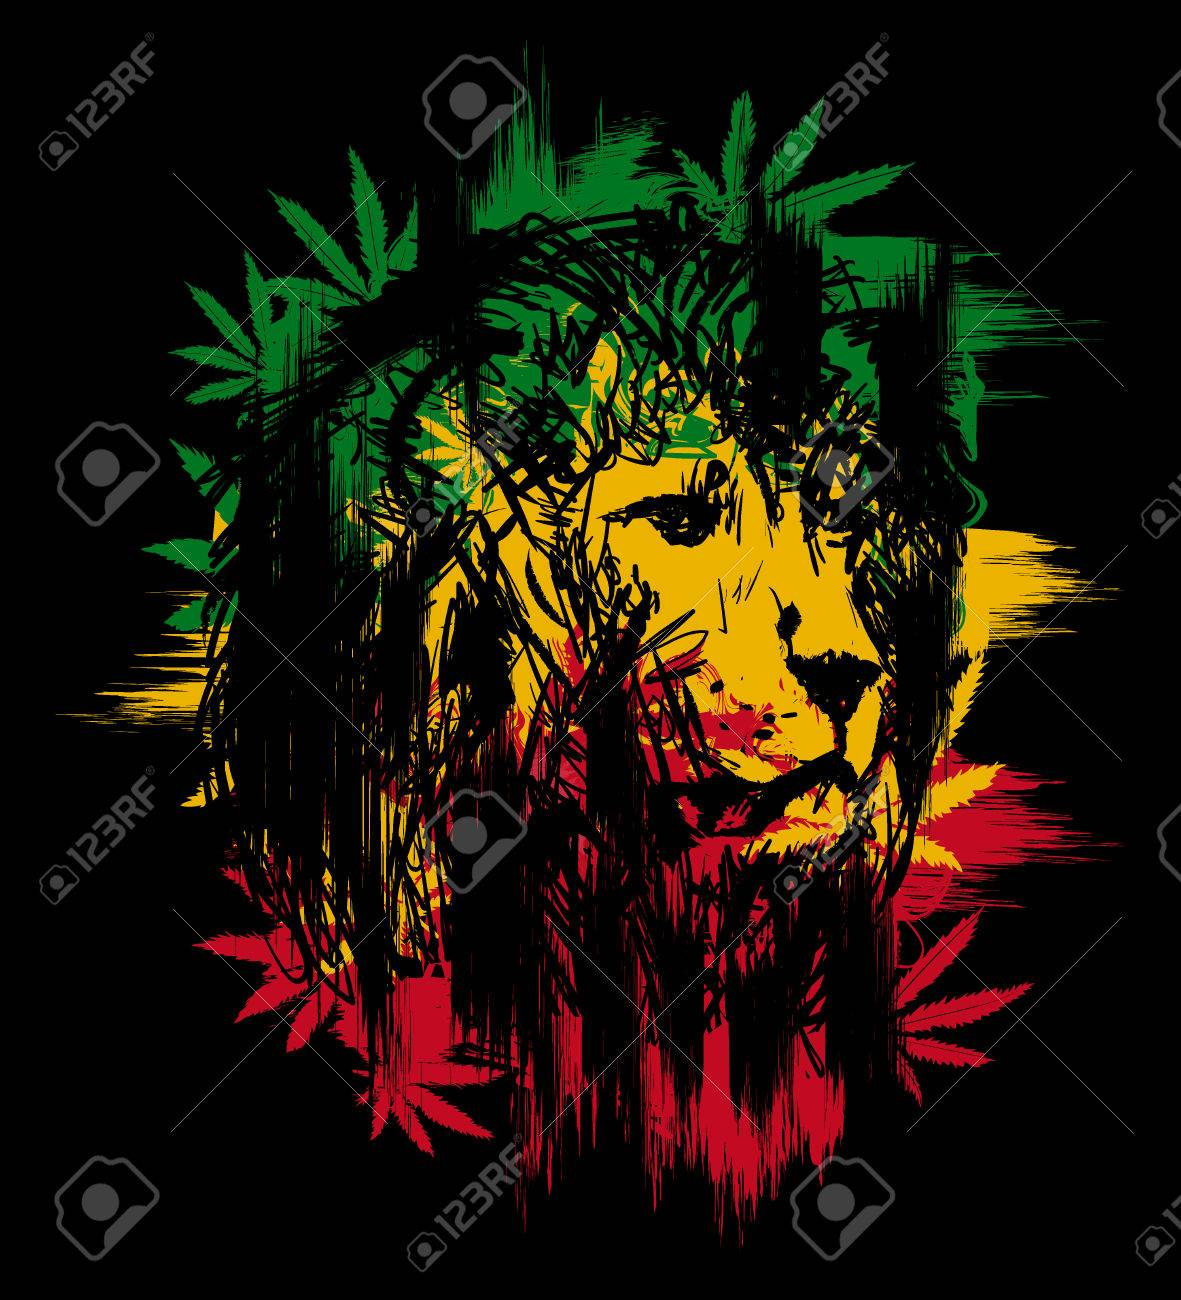 Rasta theme with lion head on black background vector illustration stock vector 69992491